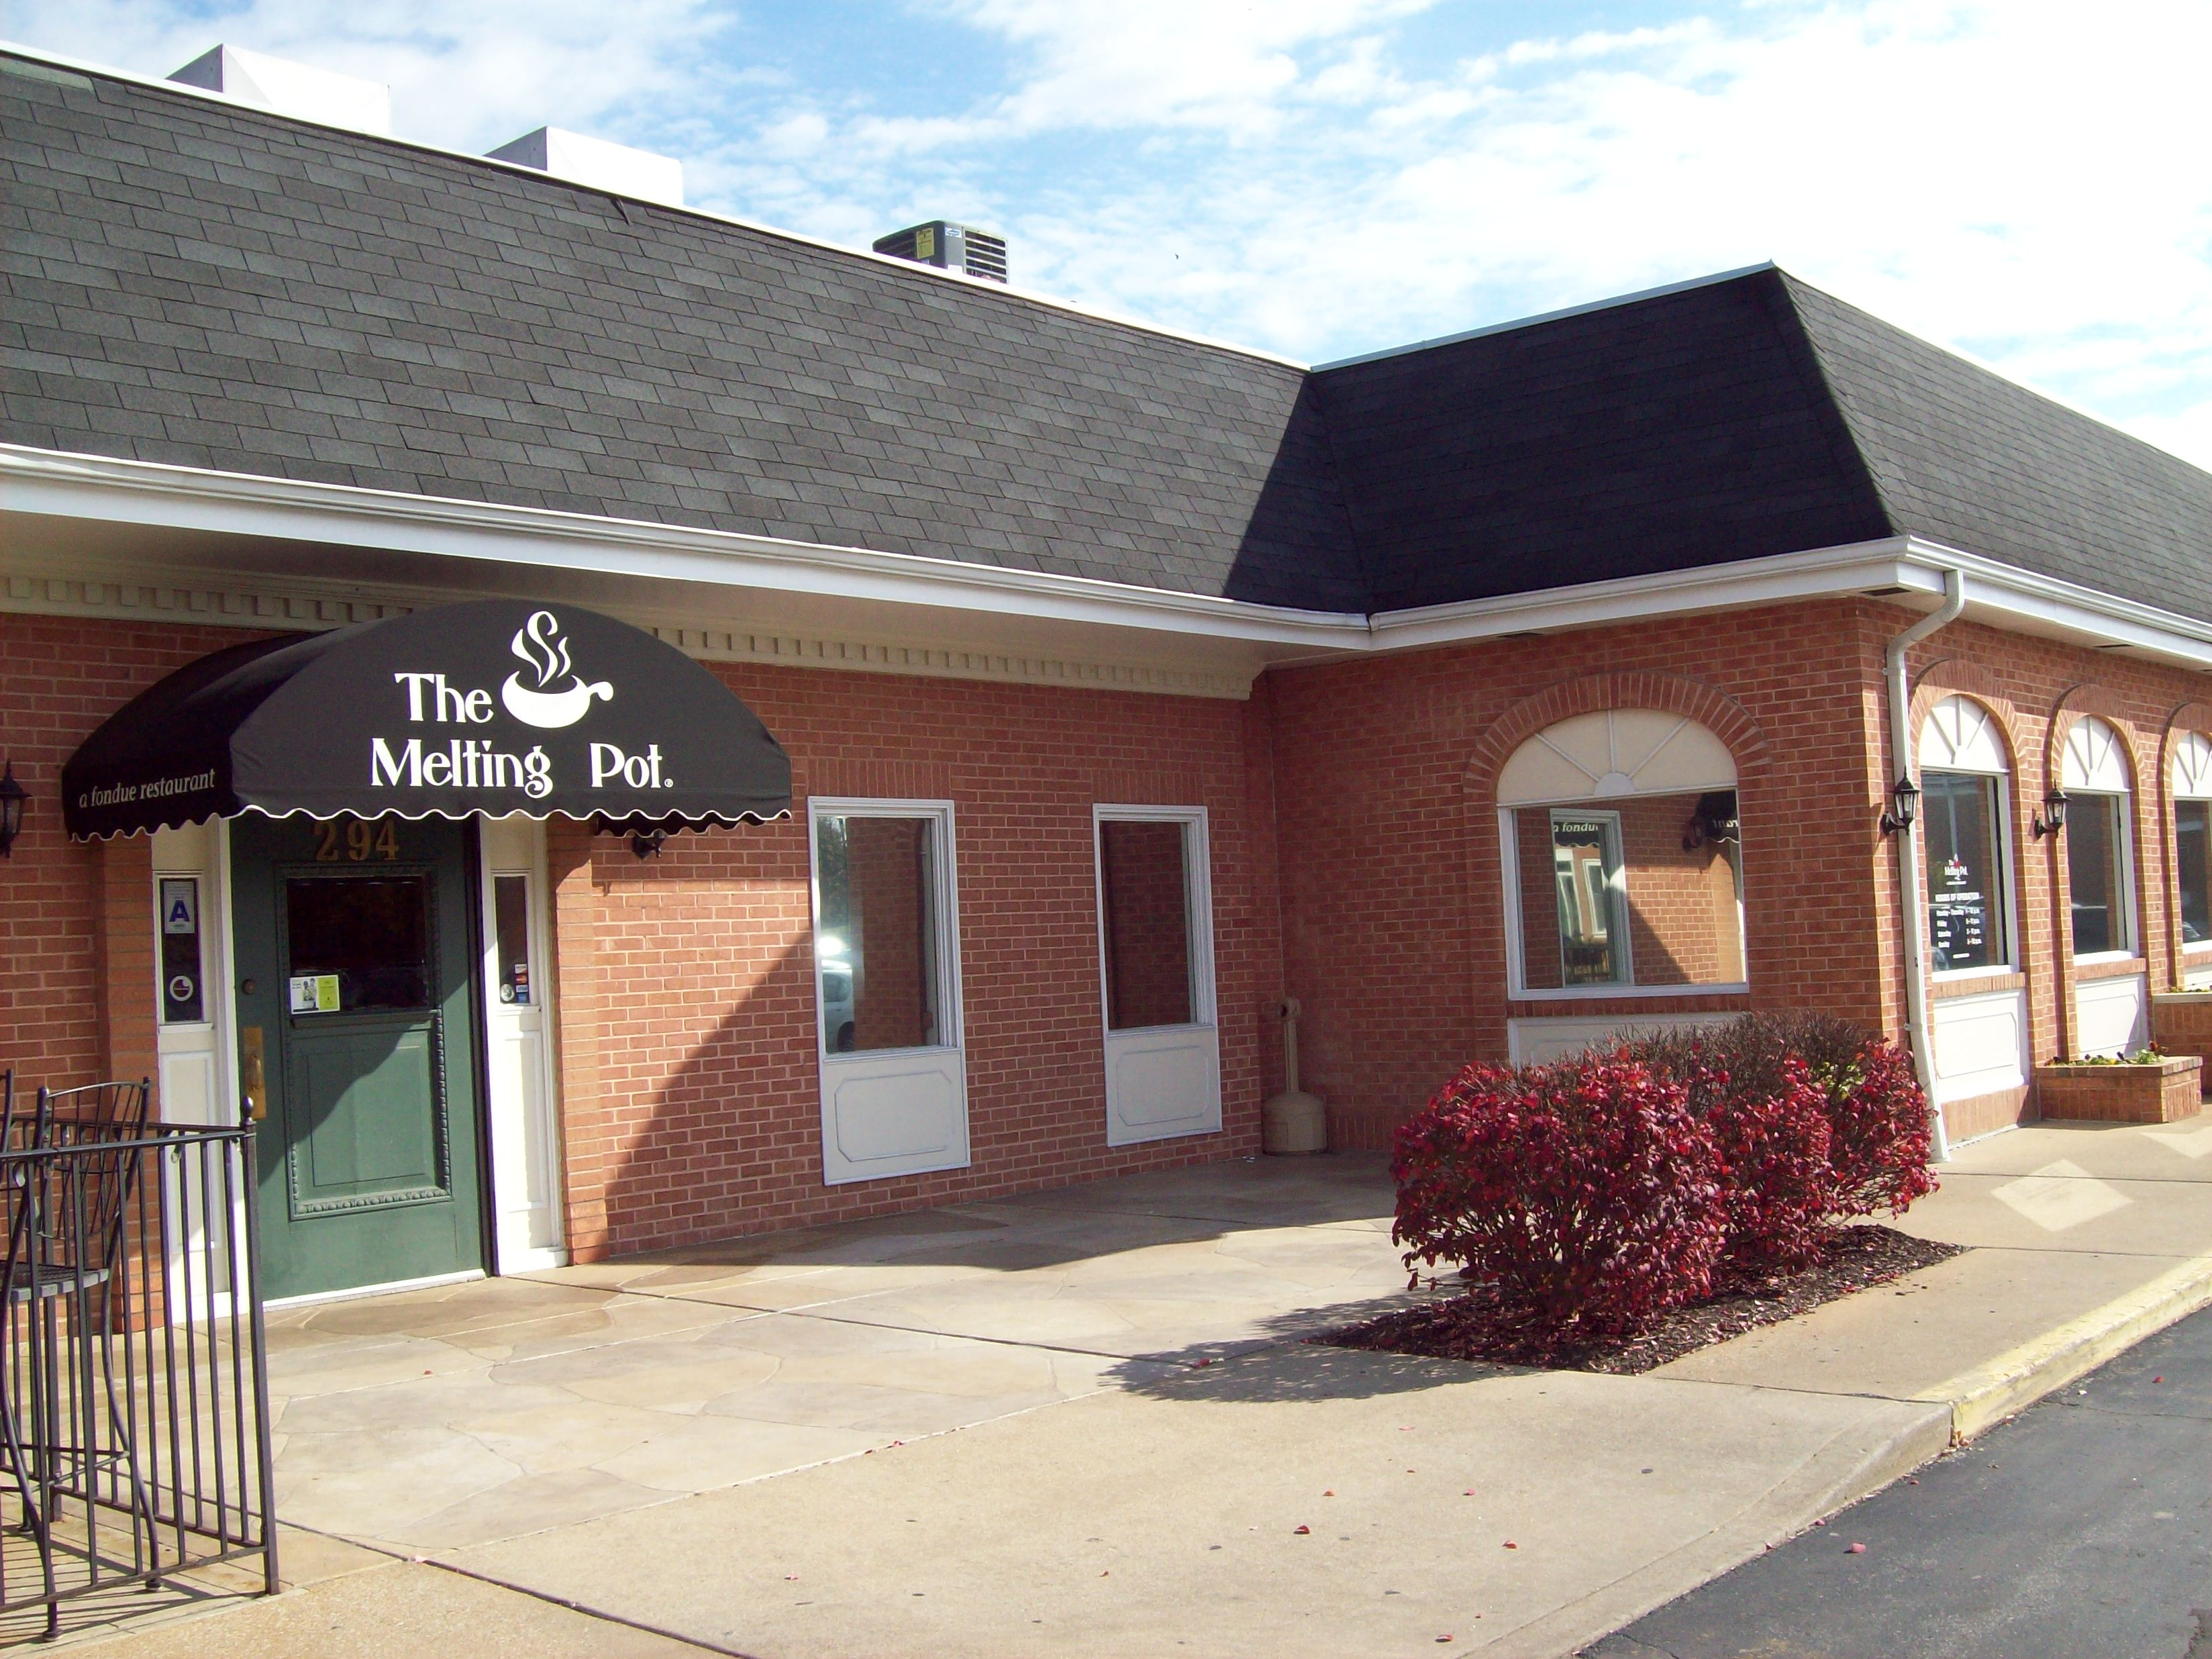 The Melting Pot in Chesterfield, MO